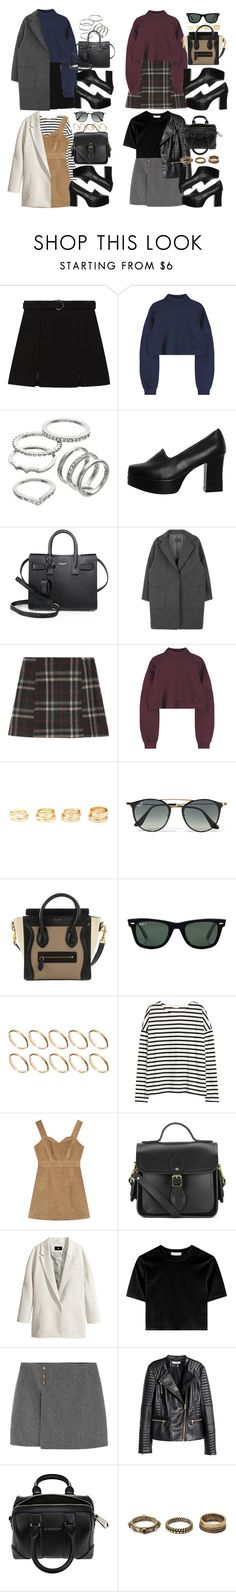 """""""Black Platform Pumps."""" by vany-alvarado ❤ liked on Polyvore featuring Apt. 9, Yves Saint Laurent, Charlotte Russe, Ray-Ban, ASOS, H&M, The Cambridge Satchel Company, Givenchy and Forever 21"""